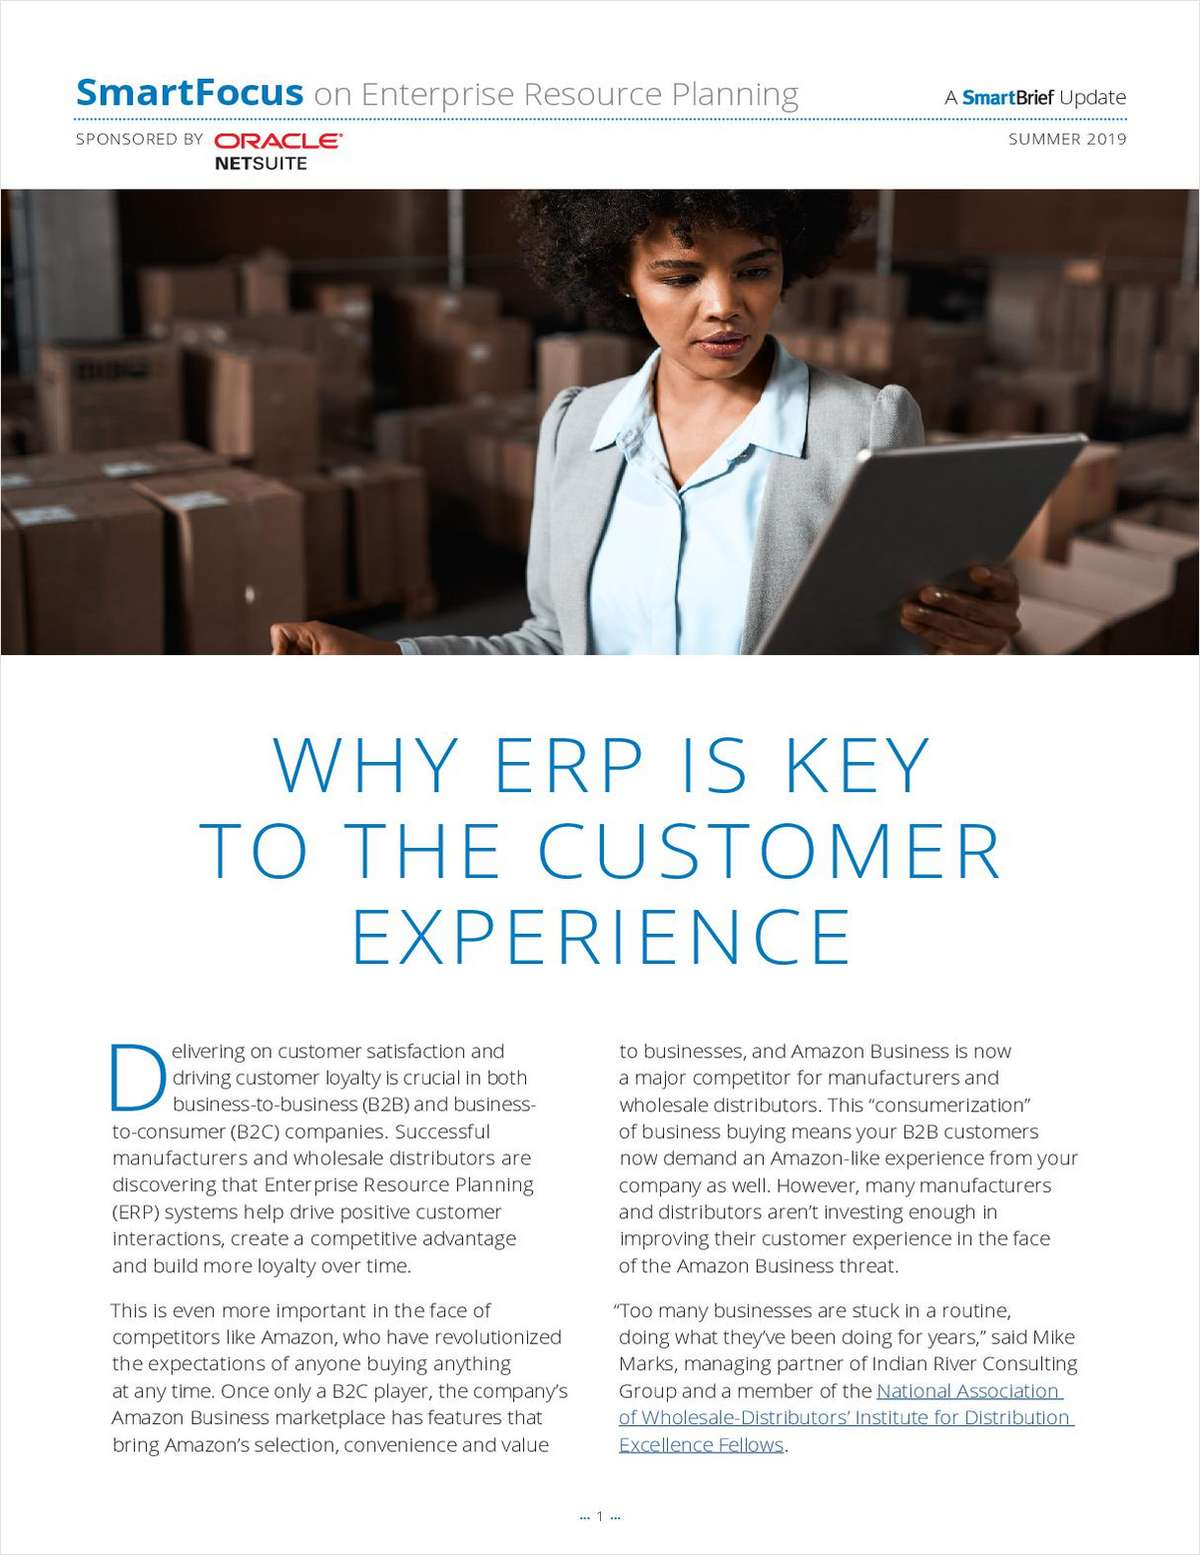 Why ERP is Key to Customer Experience